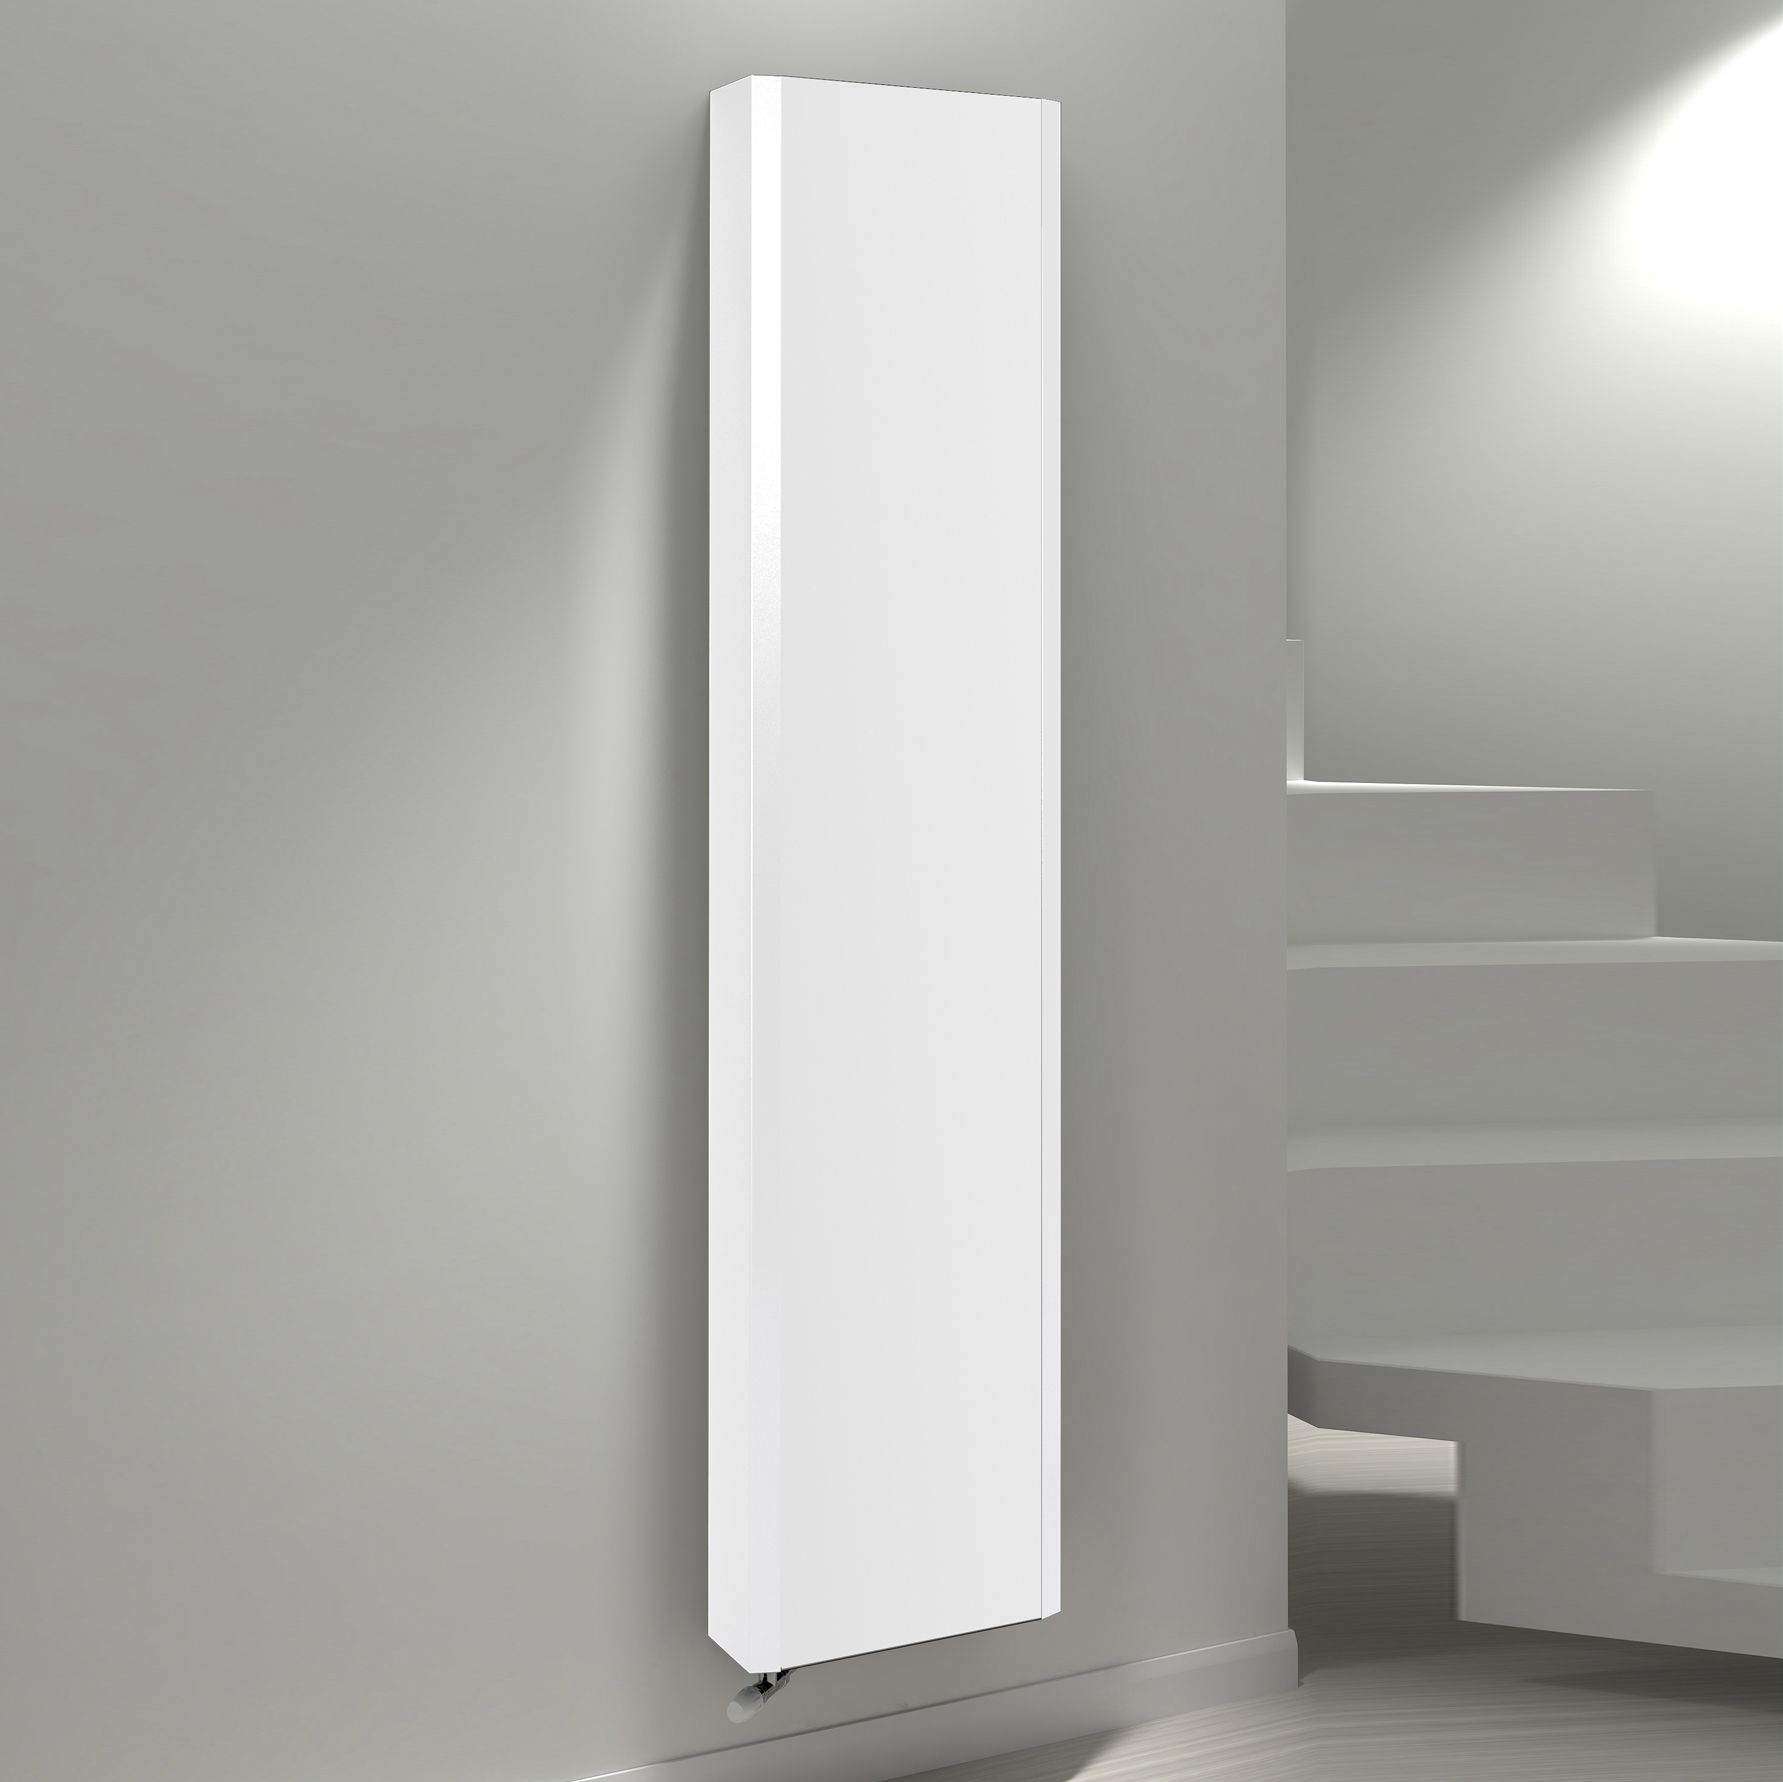 Kudox Vertical Radiator White, (h)1800 Mm (w)600 Mm